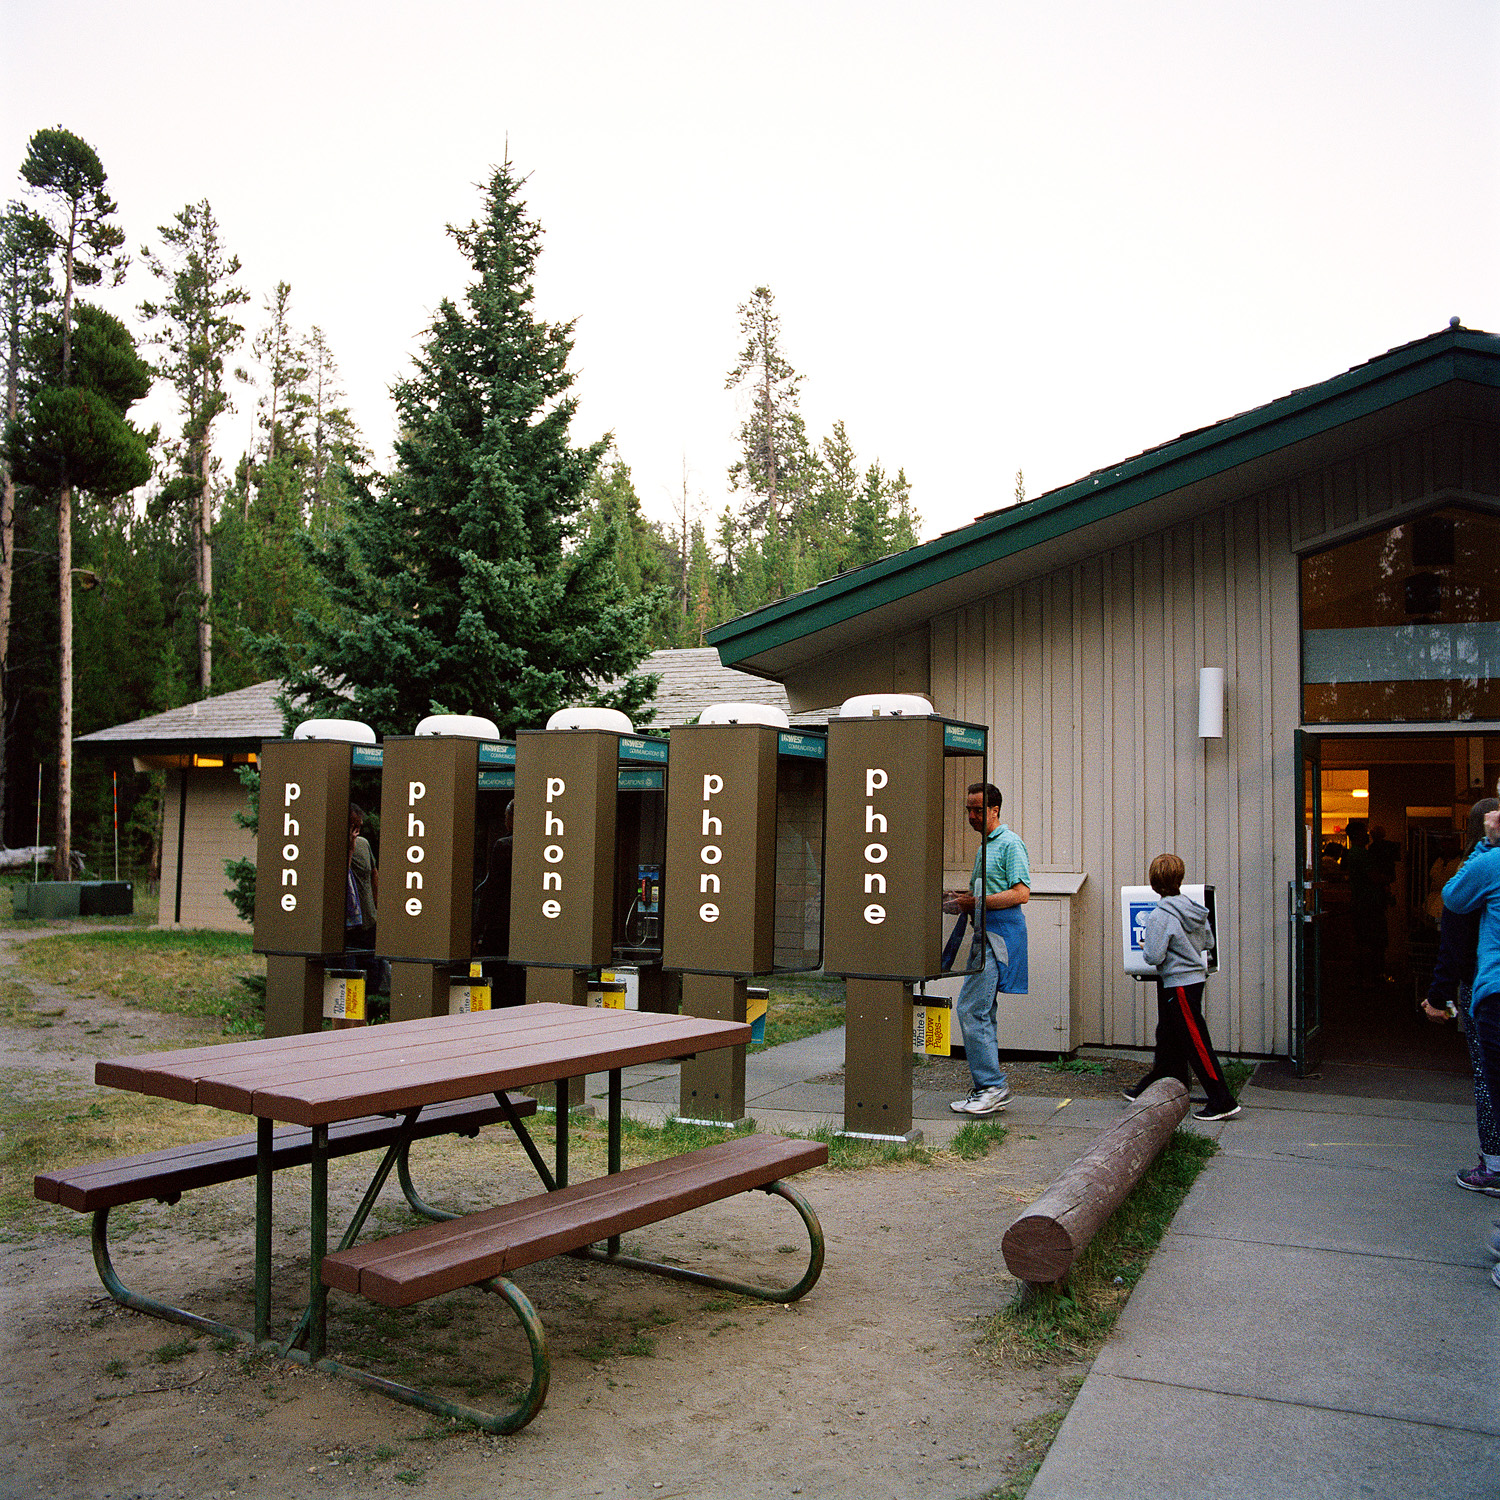 19_Parklife_Yellowstone_Phones.jpg